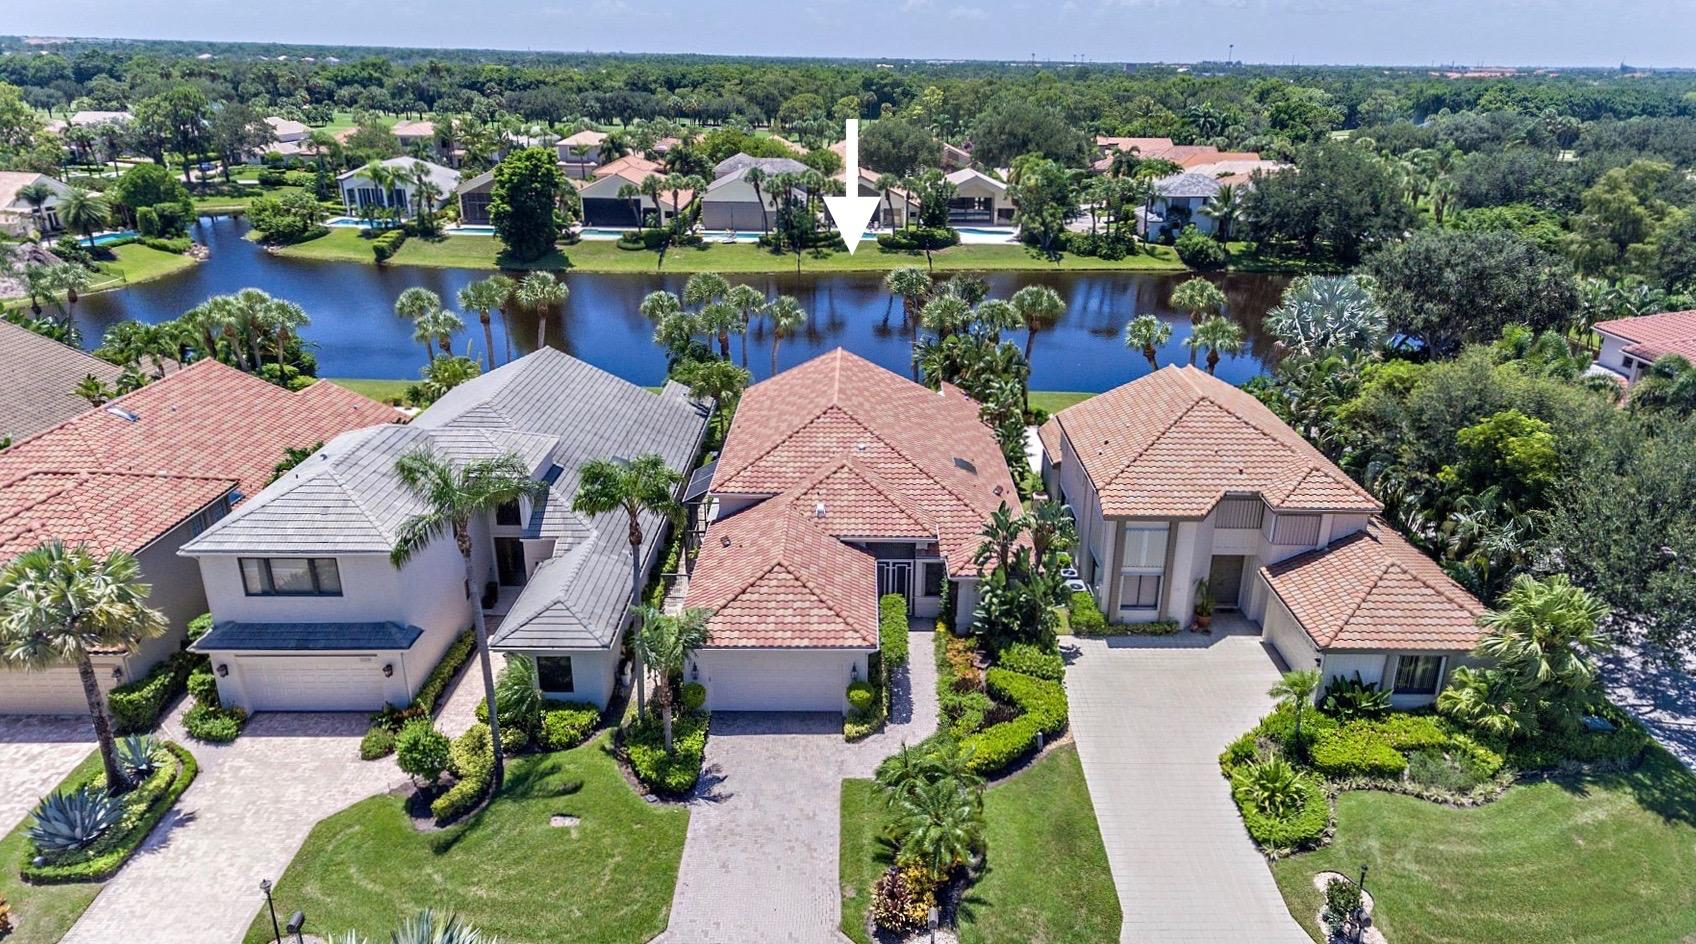 13323 Deauville Drive, Palm Beach Gardens, Florida 33410, 3 Bedrooms Bedrooms, ,4.1 BathroomsBathrooms,A,Single family,Deauville,RX-10548396